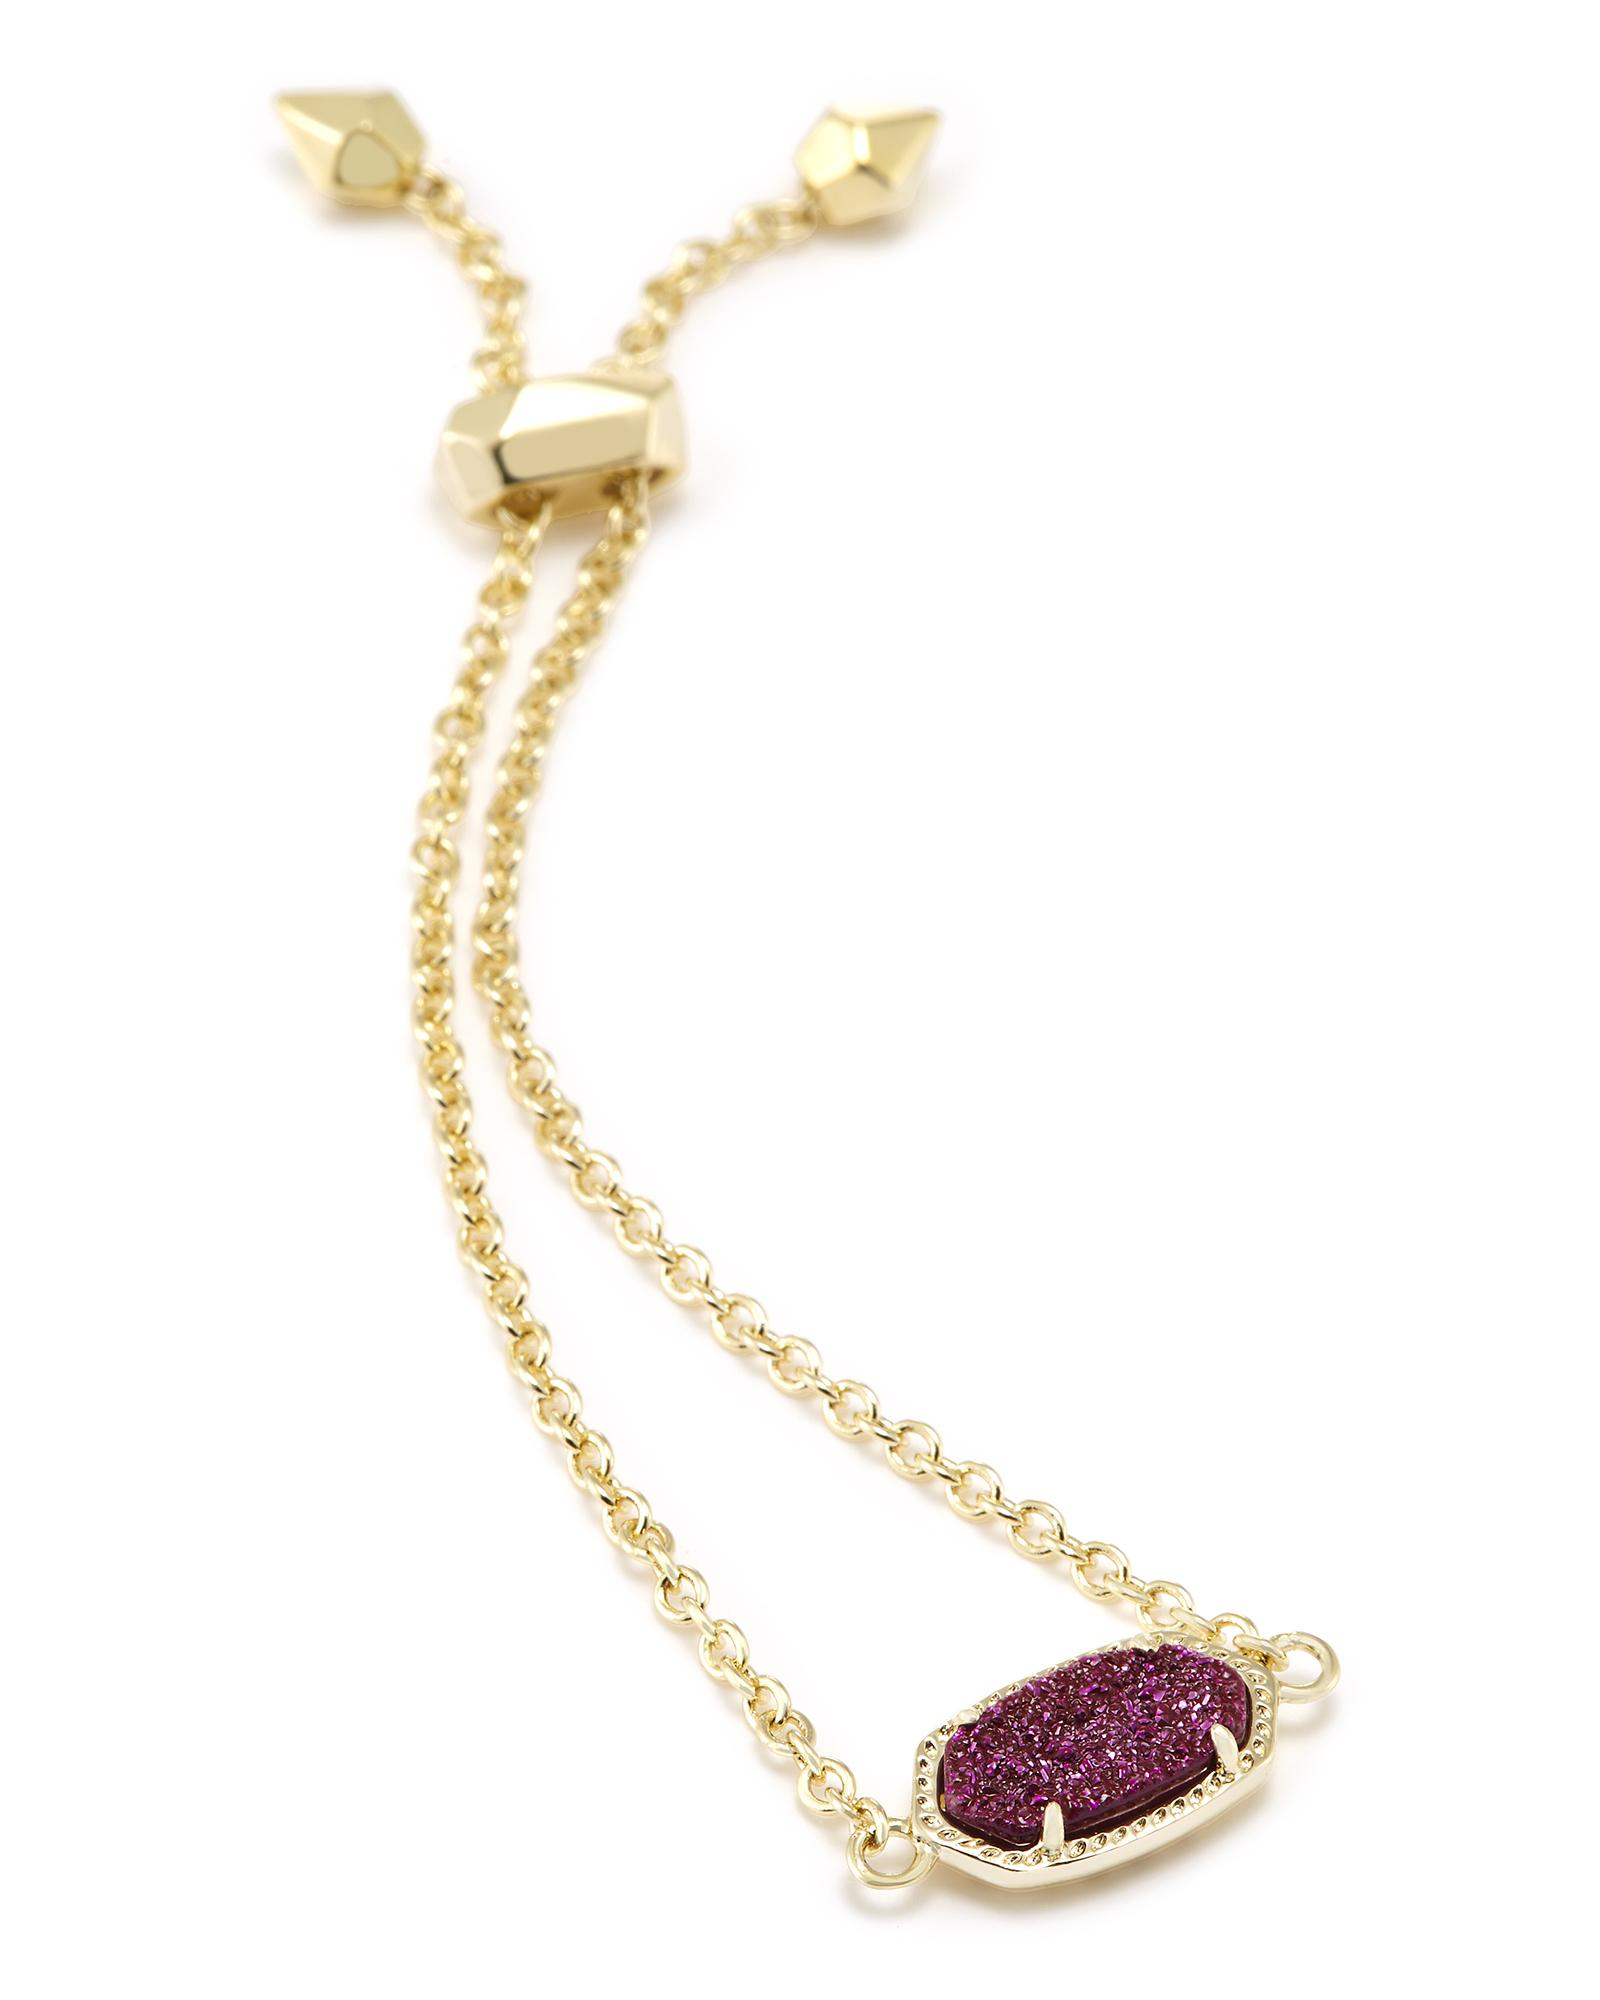 Elaina Adjustable Chain Bracelet in Fuchsia Drusy